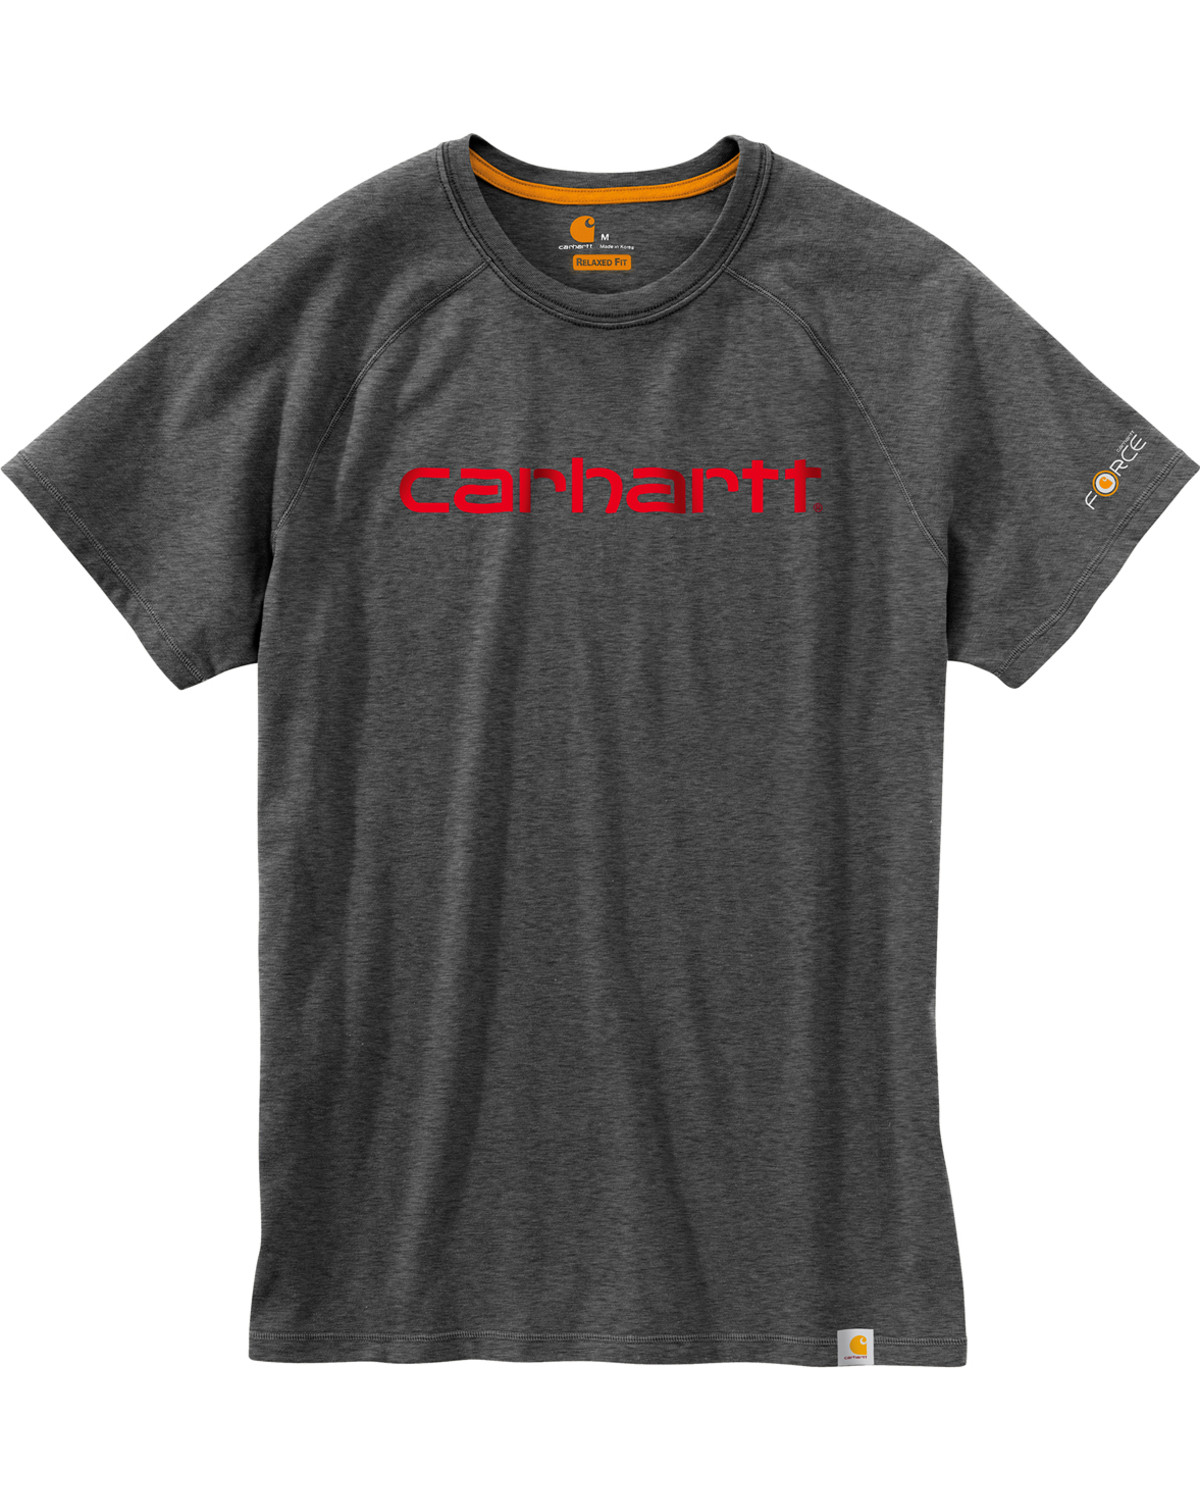 c07c395b Zoomed Image Carhartt Force Men's Cotton Delmont Graphic Short Sleeve Shirt,  Charcoal, ...